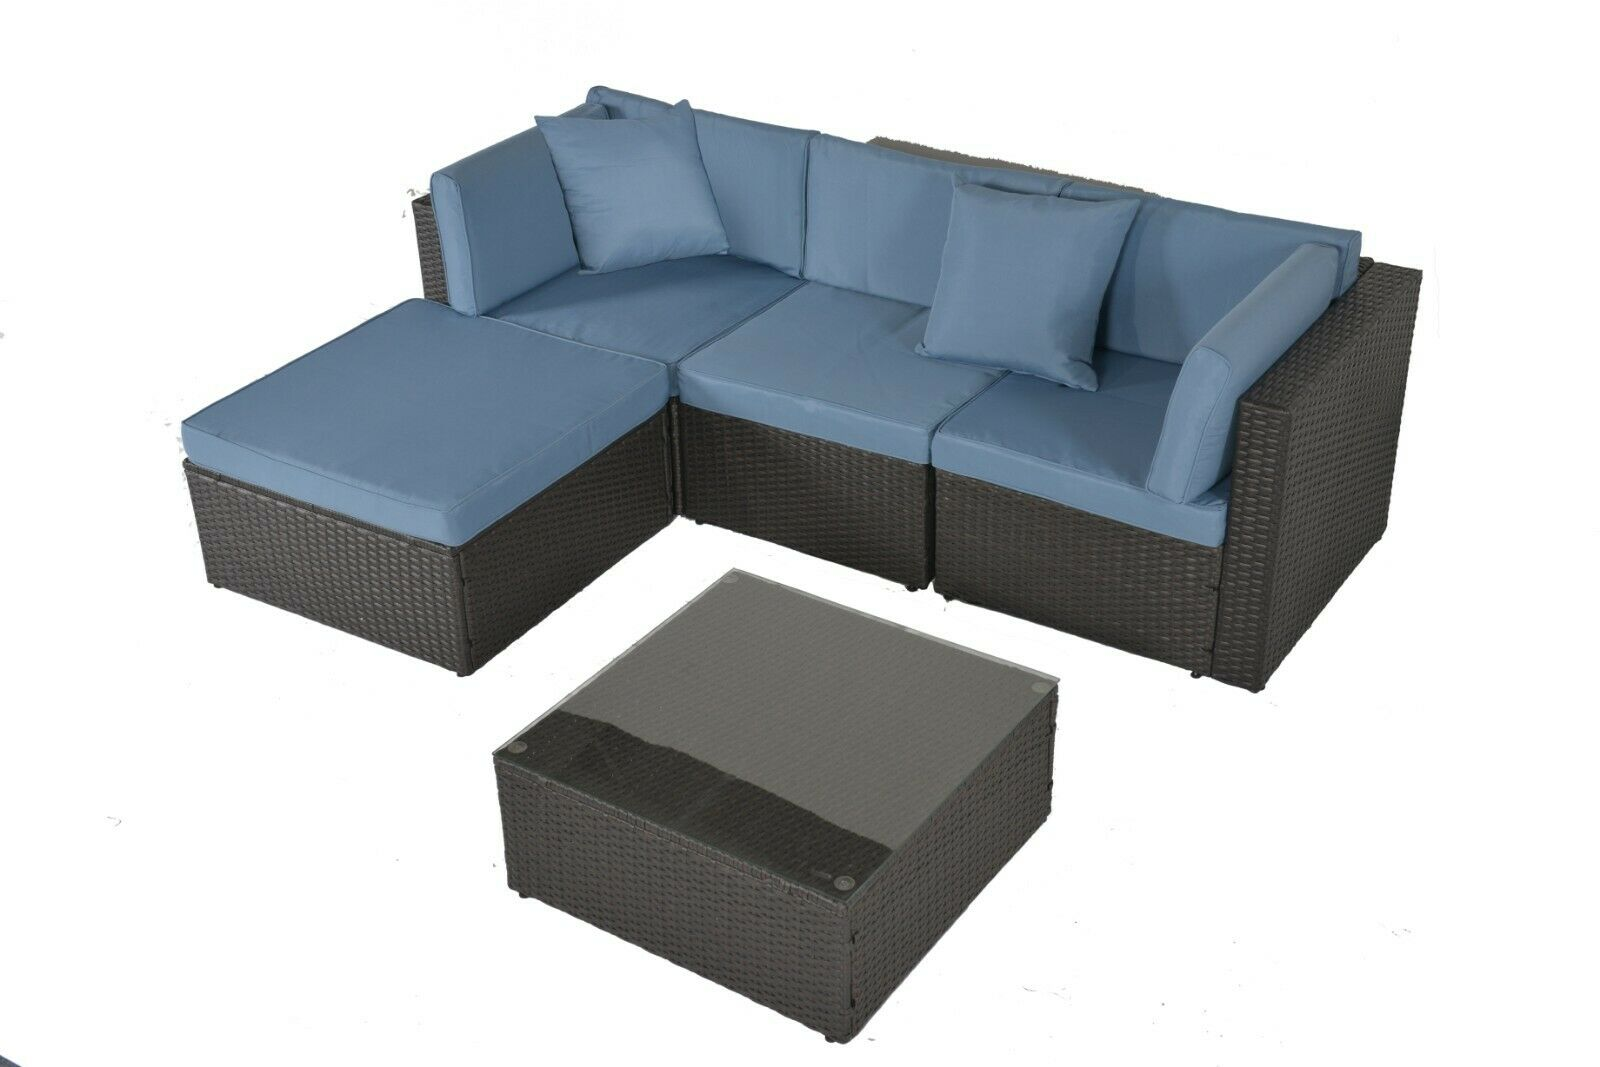 Garden Furniture - Outdoor Patio Furniture Rattan Wicker Sofa Set Garden Sectional Sofa Cushioned